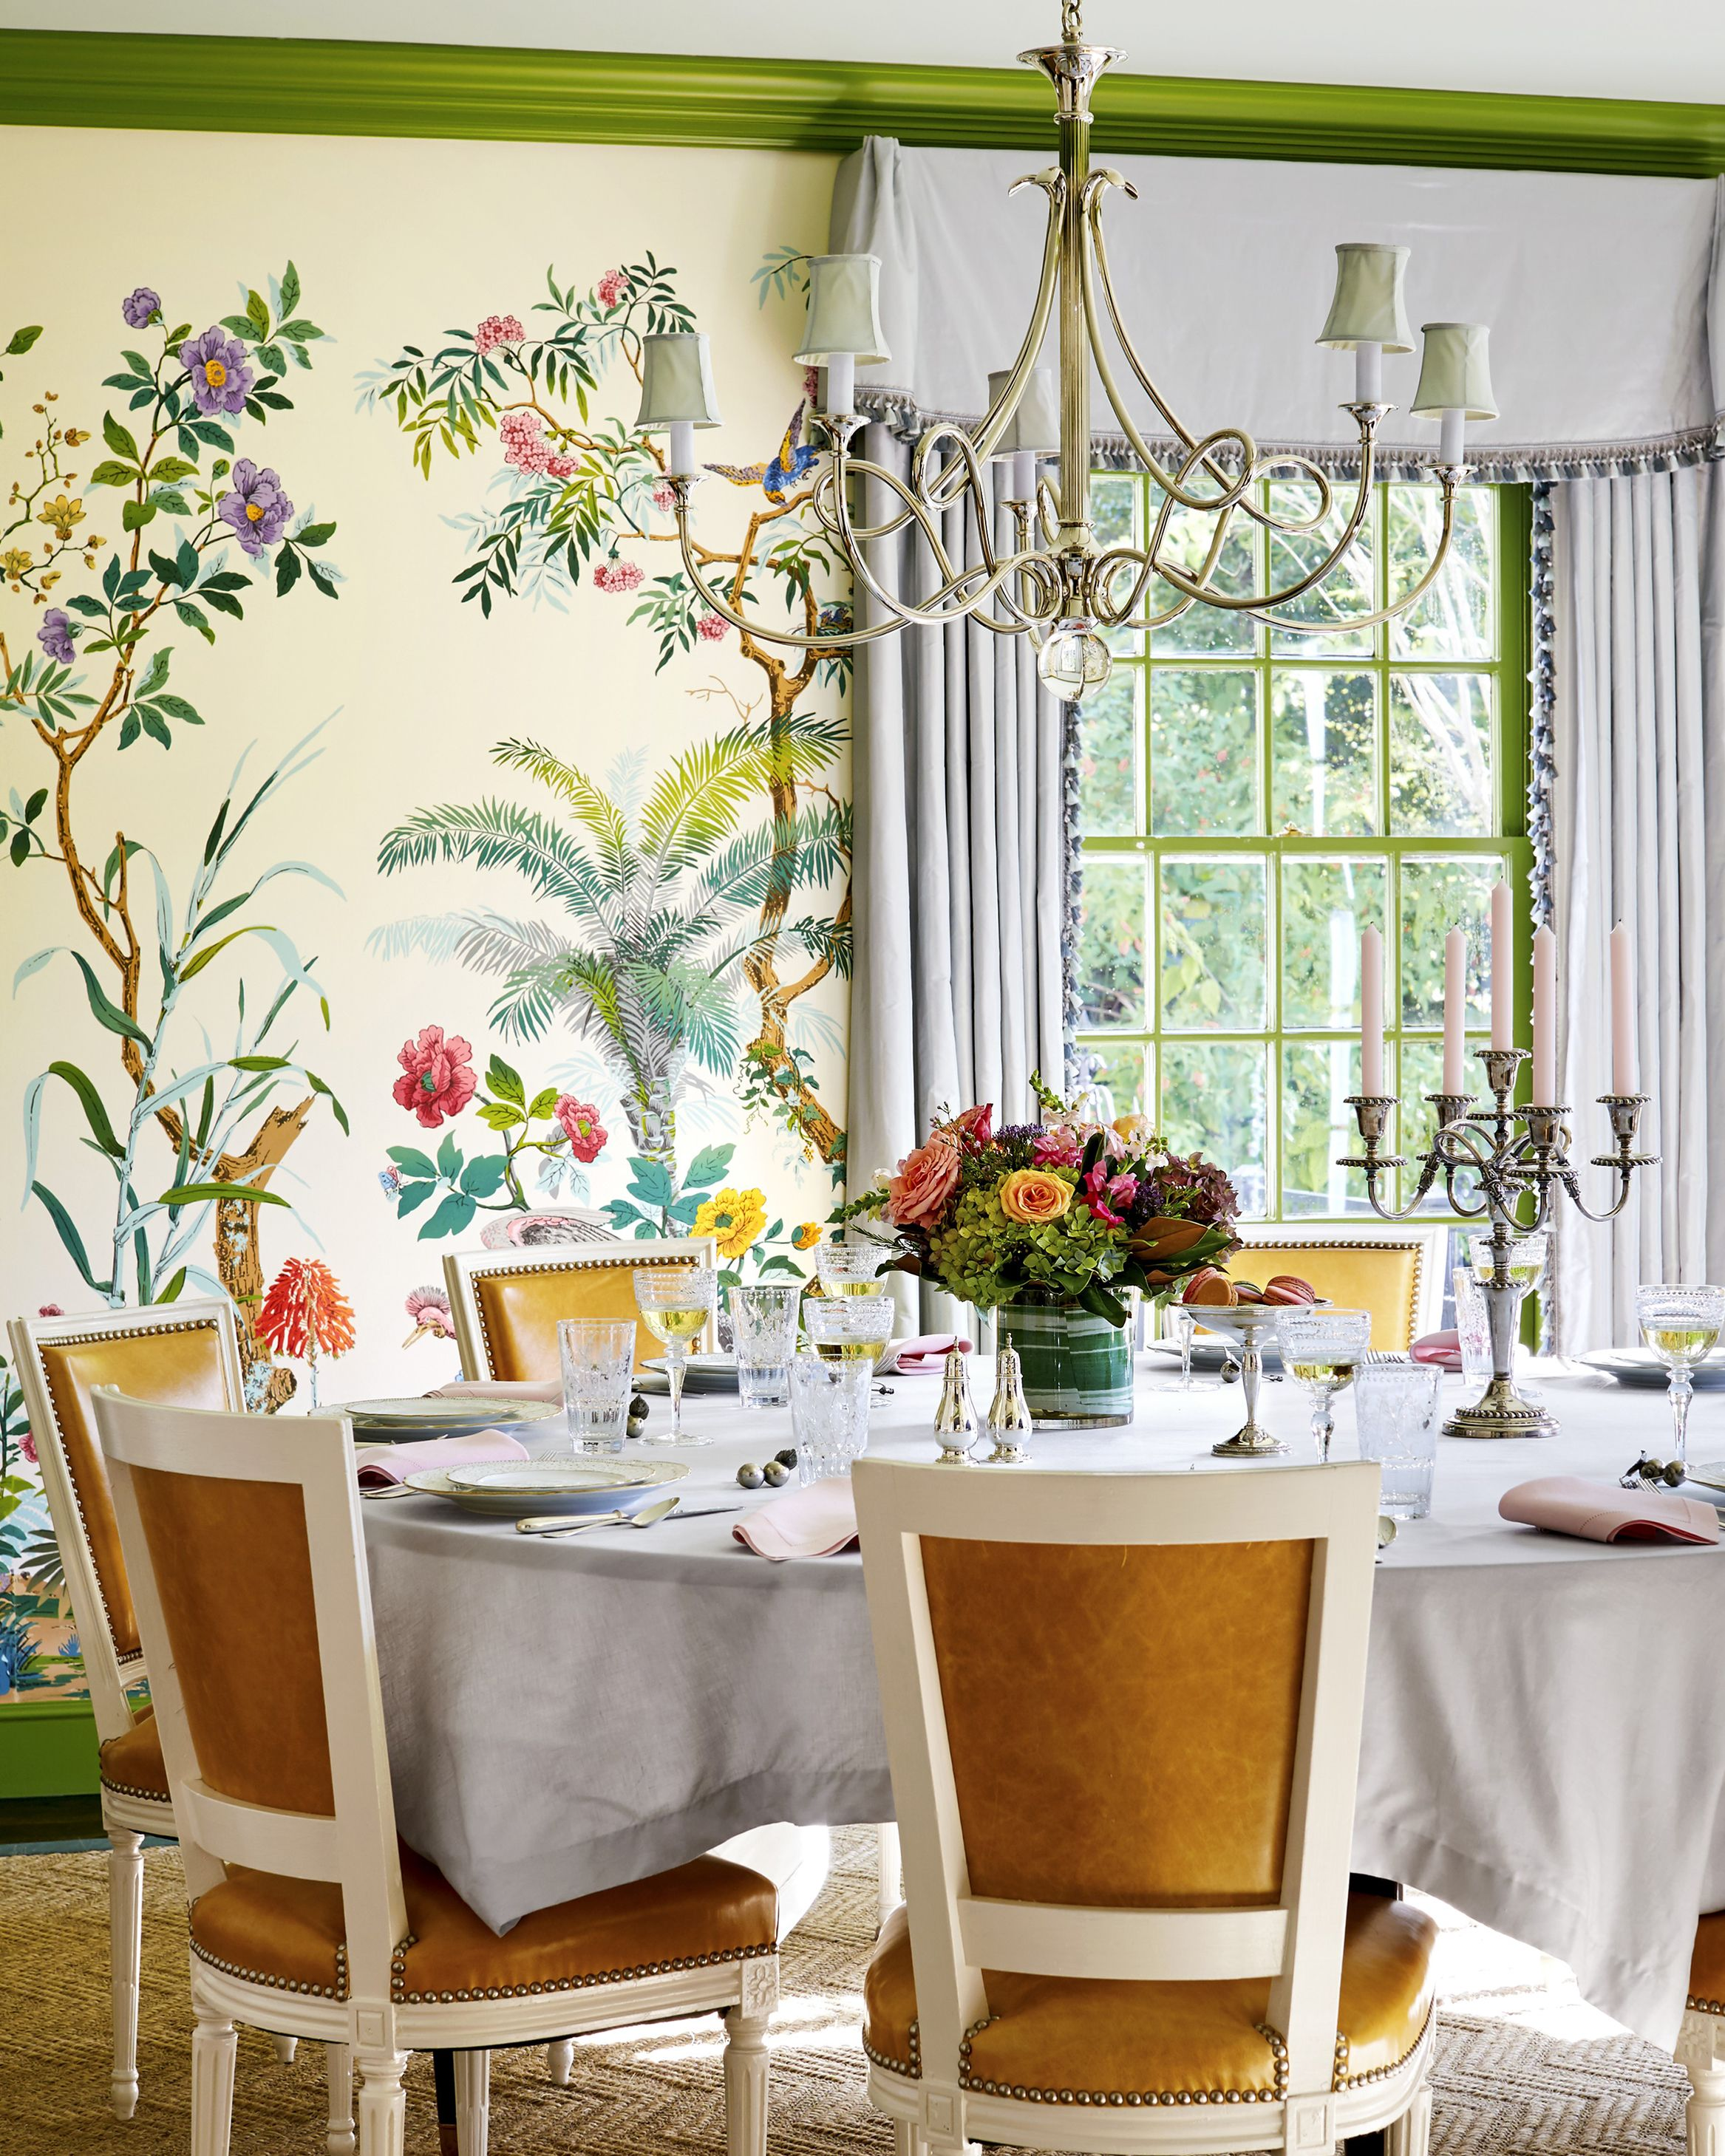 The dining room now bursts with high-octane design, from the Zuber wallpaper to the molding's Pantone shade of Piquant Green.